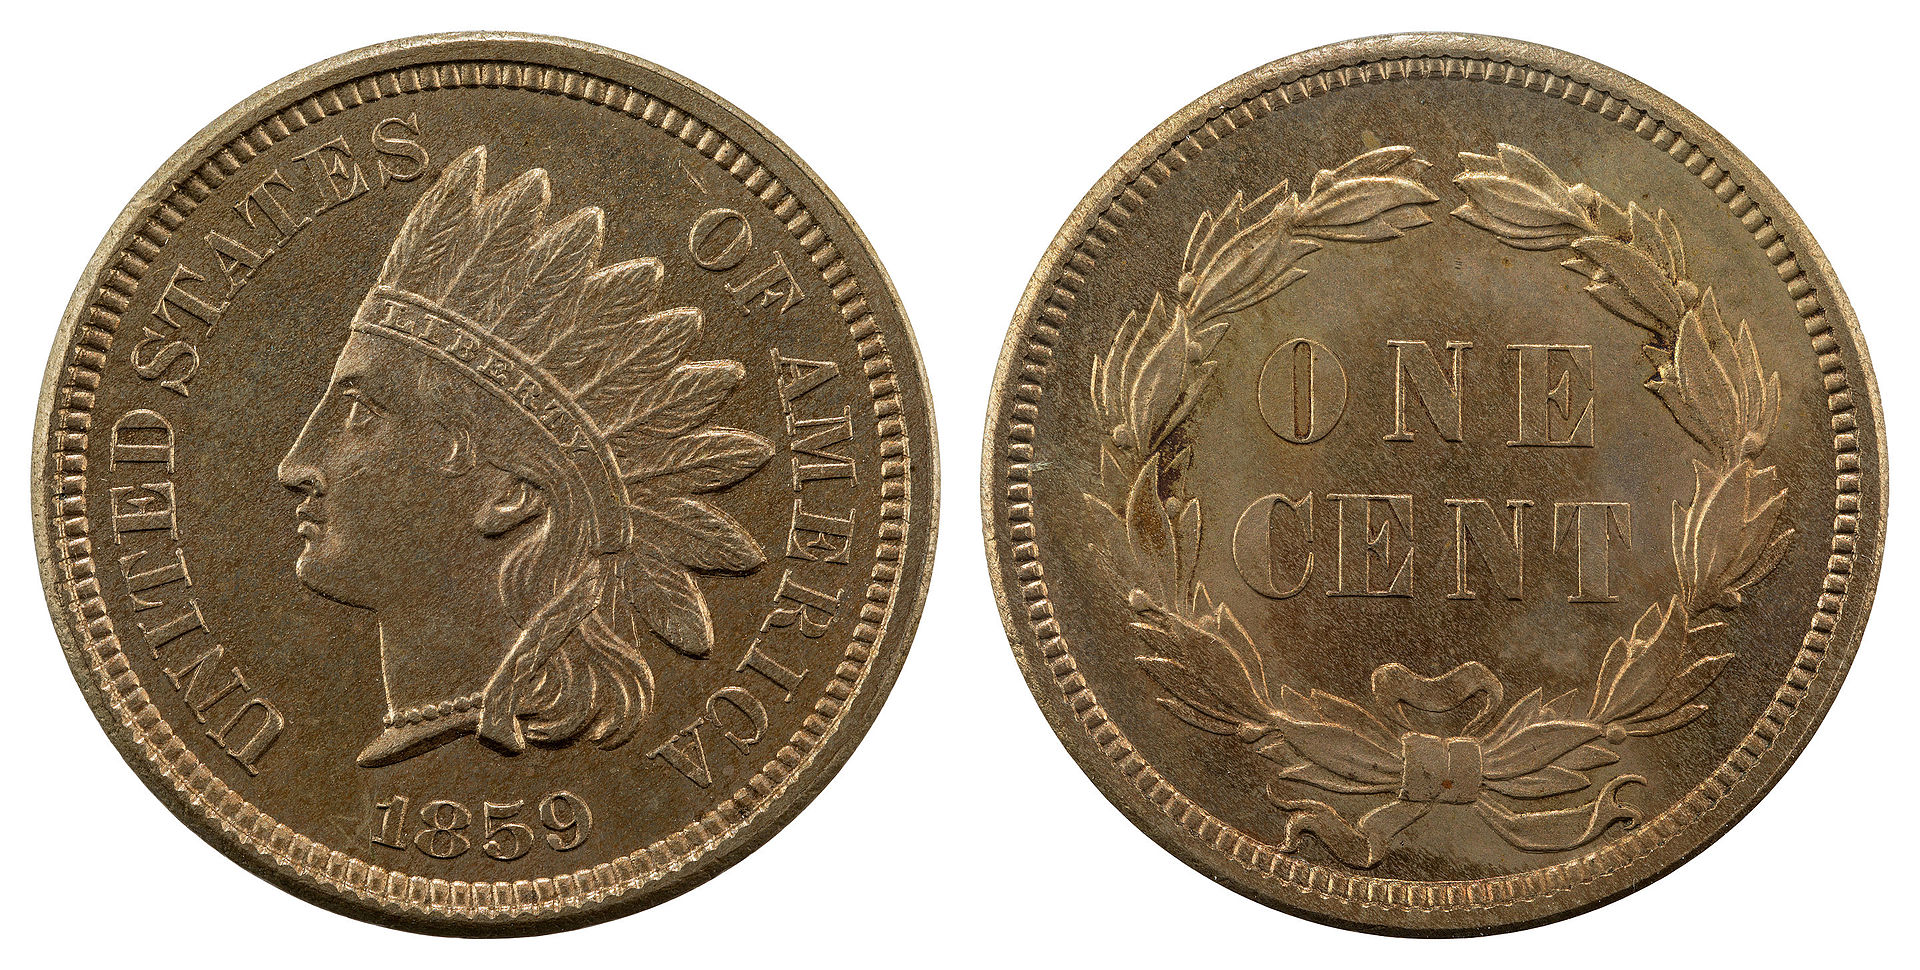 Indian Head Cent Wikipedia